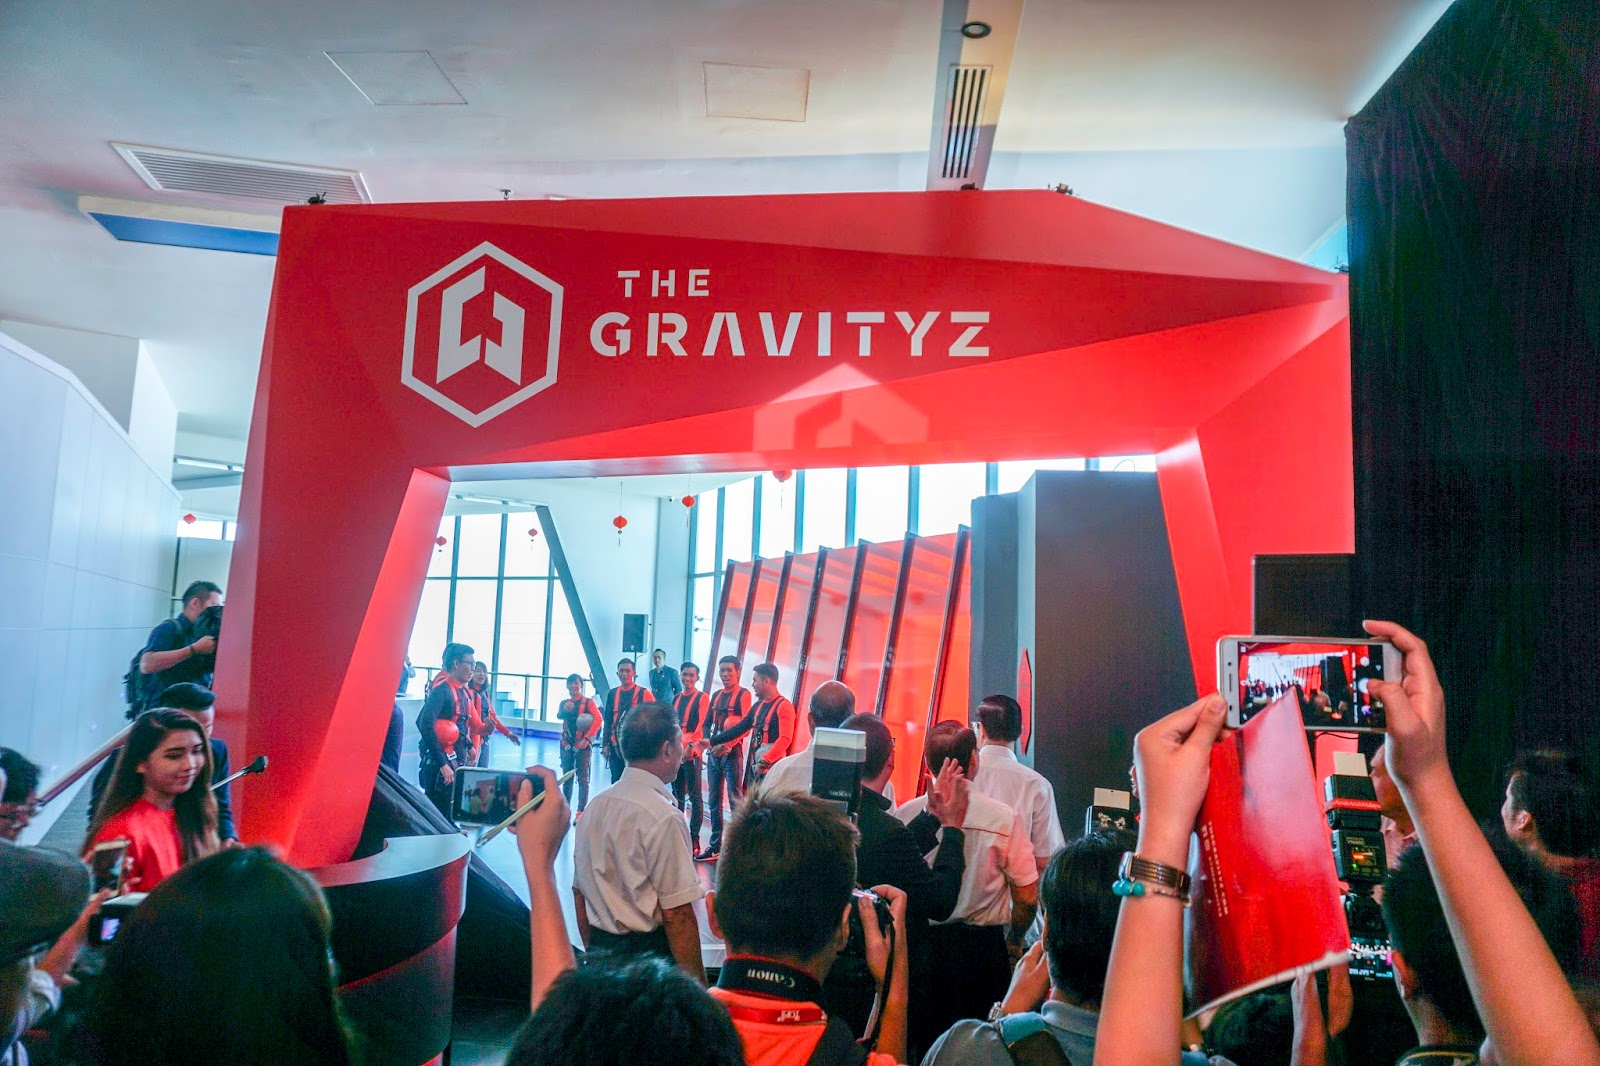 The Gravityz @ The Top, Komtar, Penang